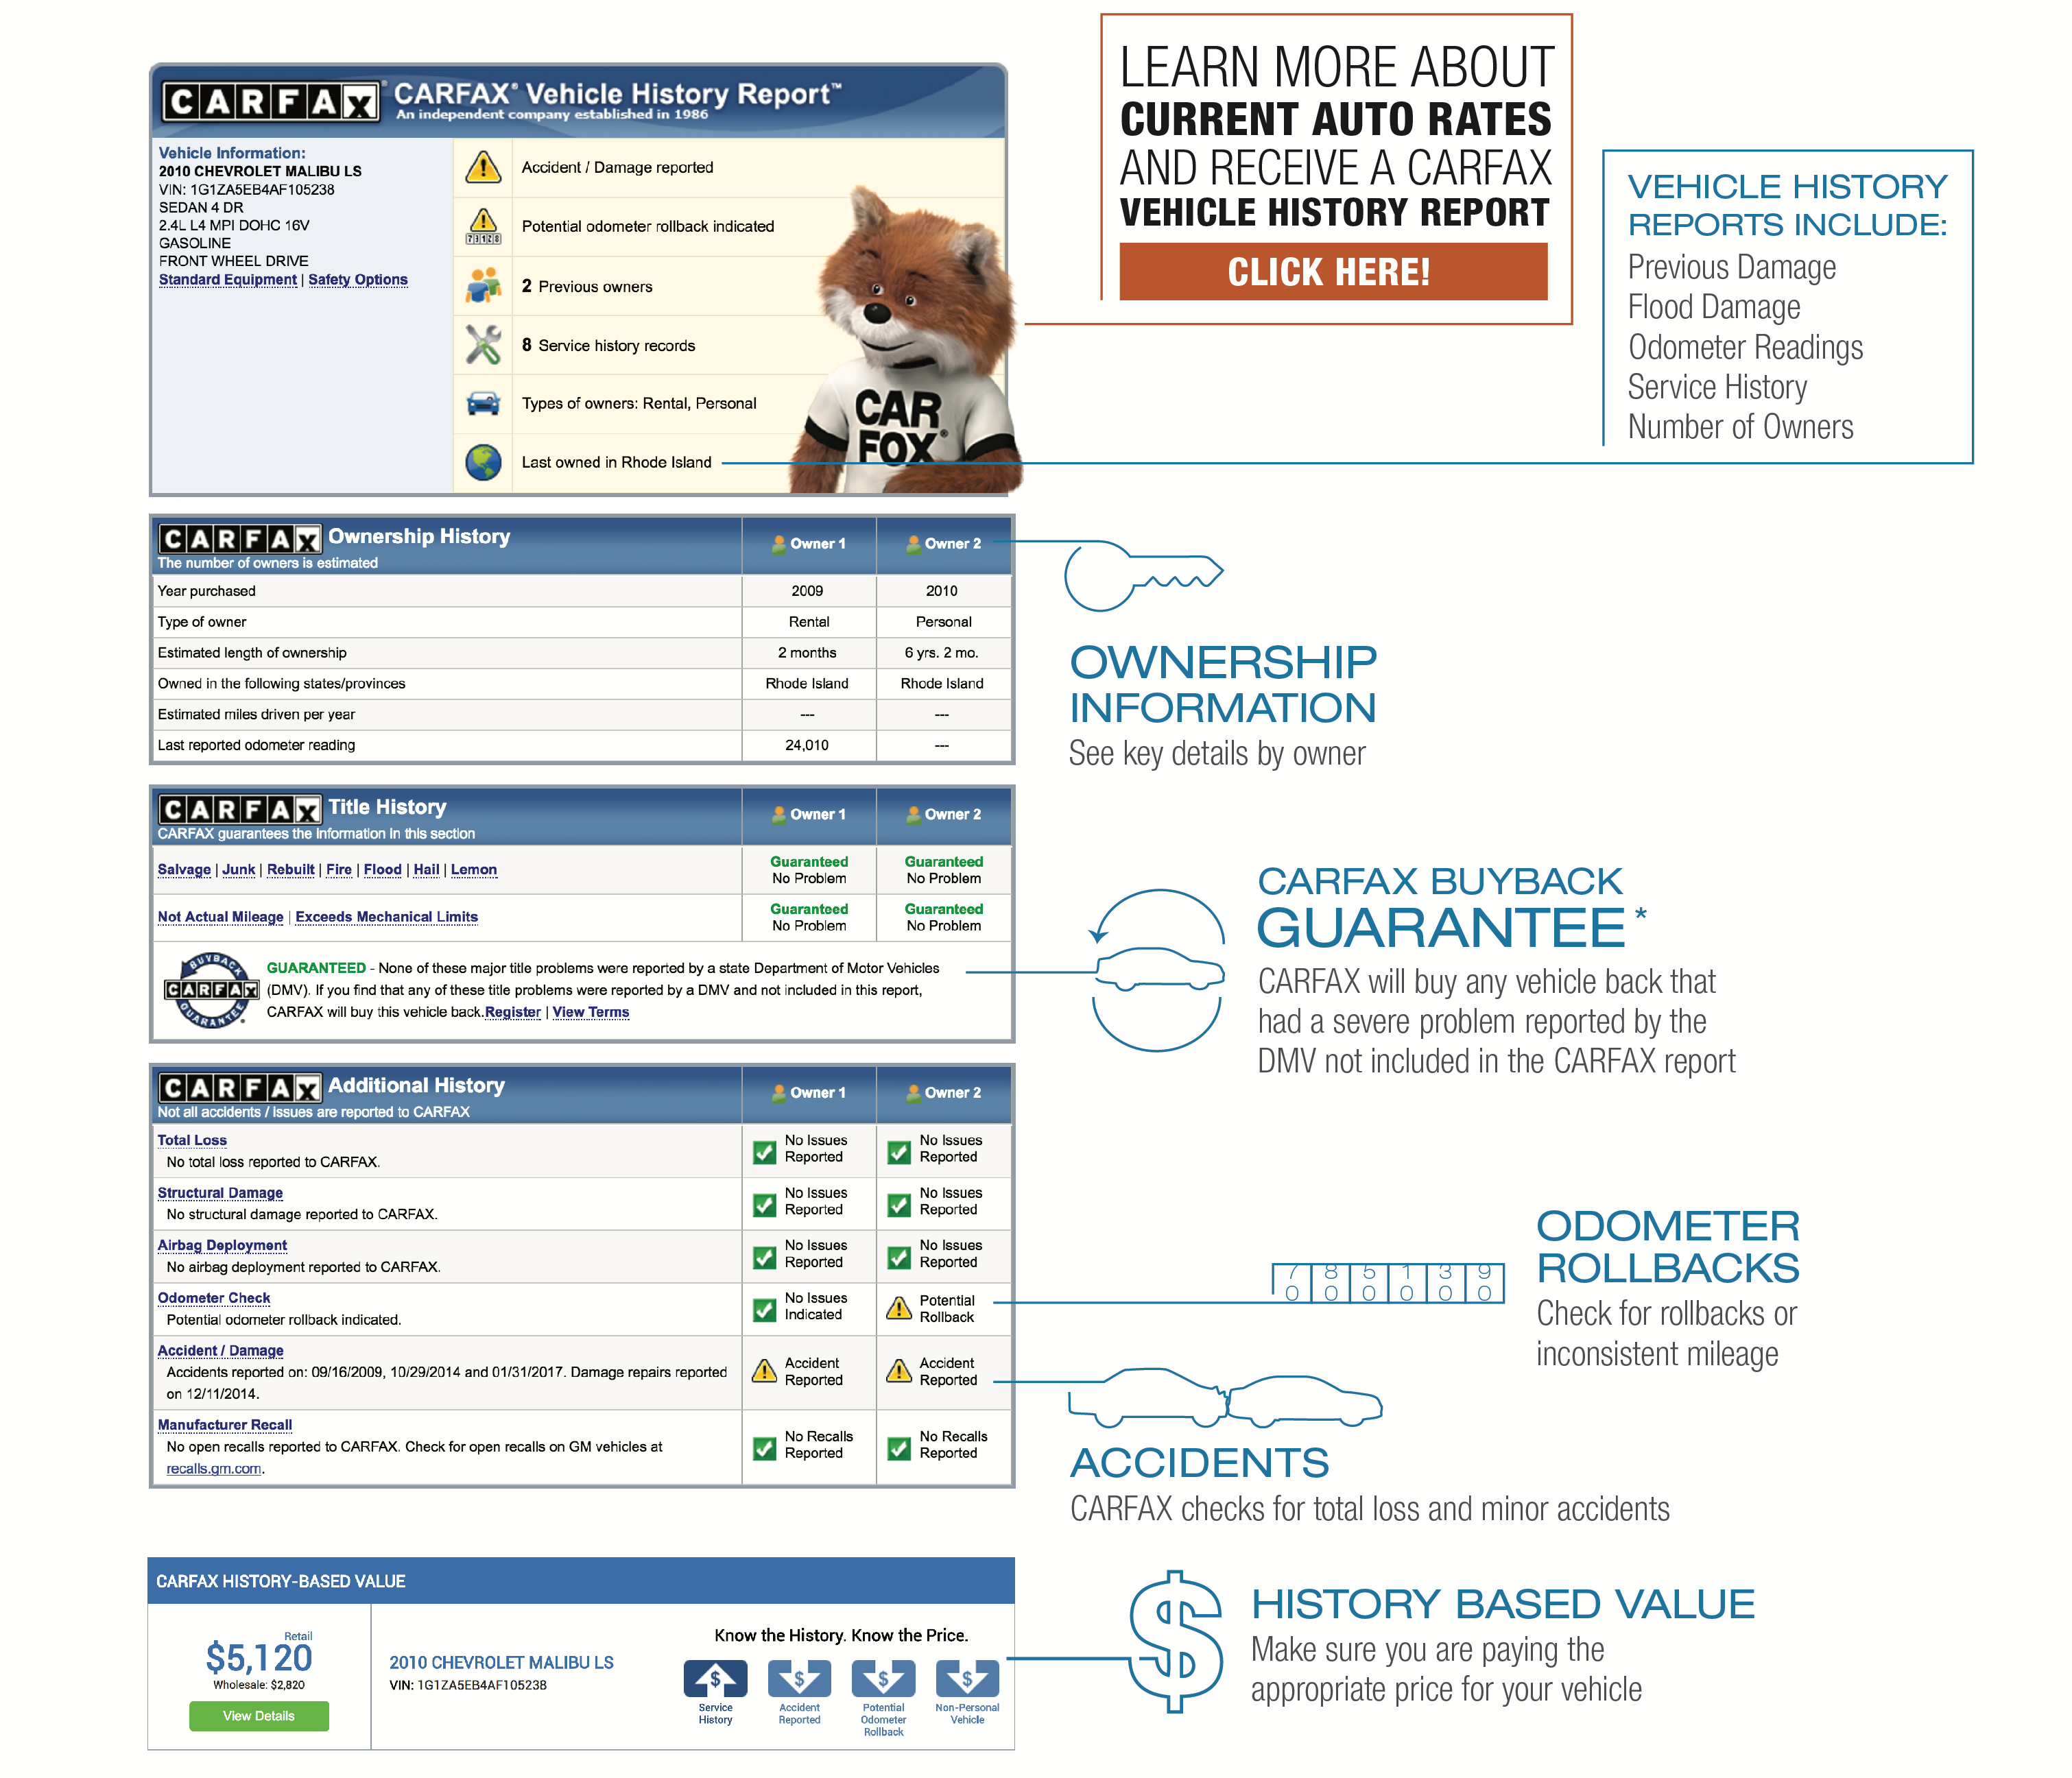 Carfax Vehicle History Report Free Luxury Carfax Banking and Insurance Group More Information Better Decisions